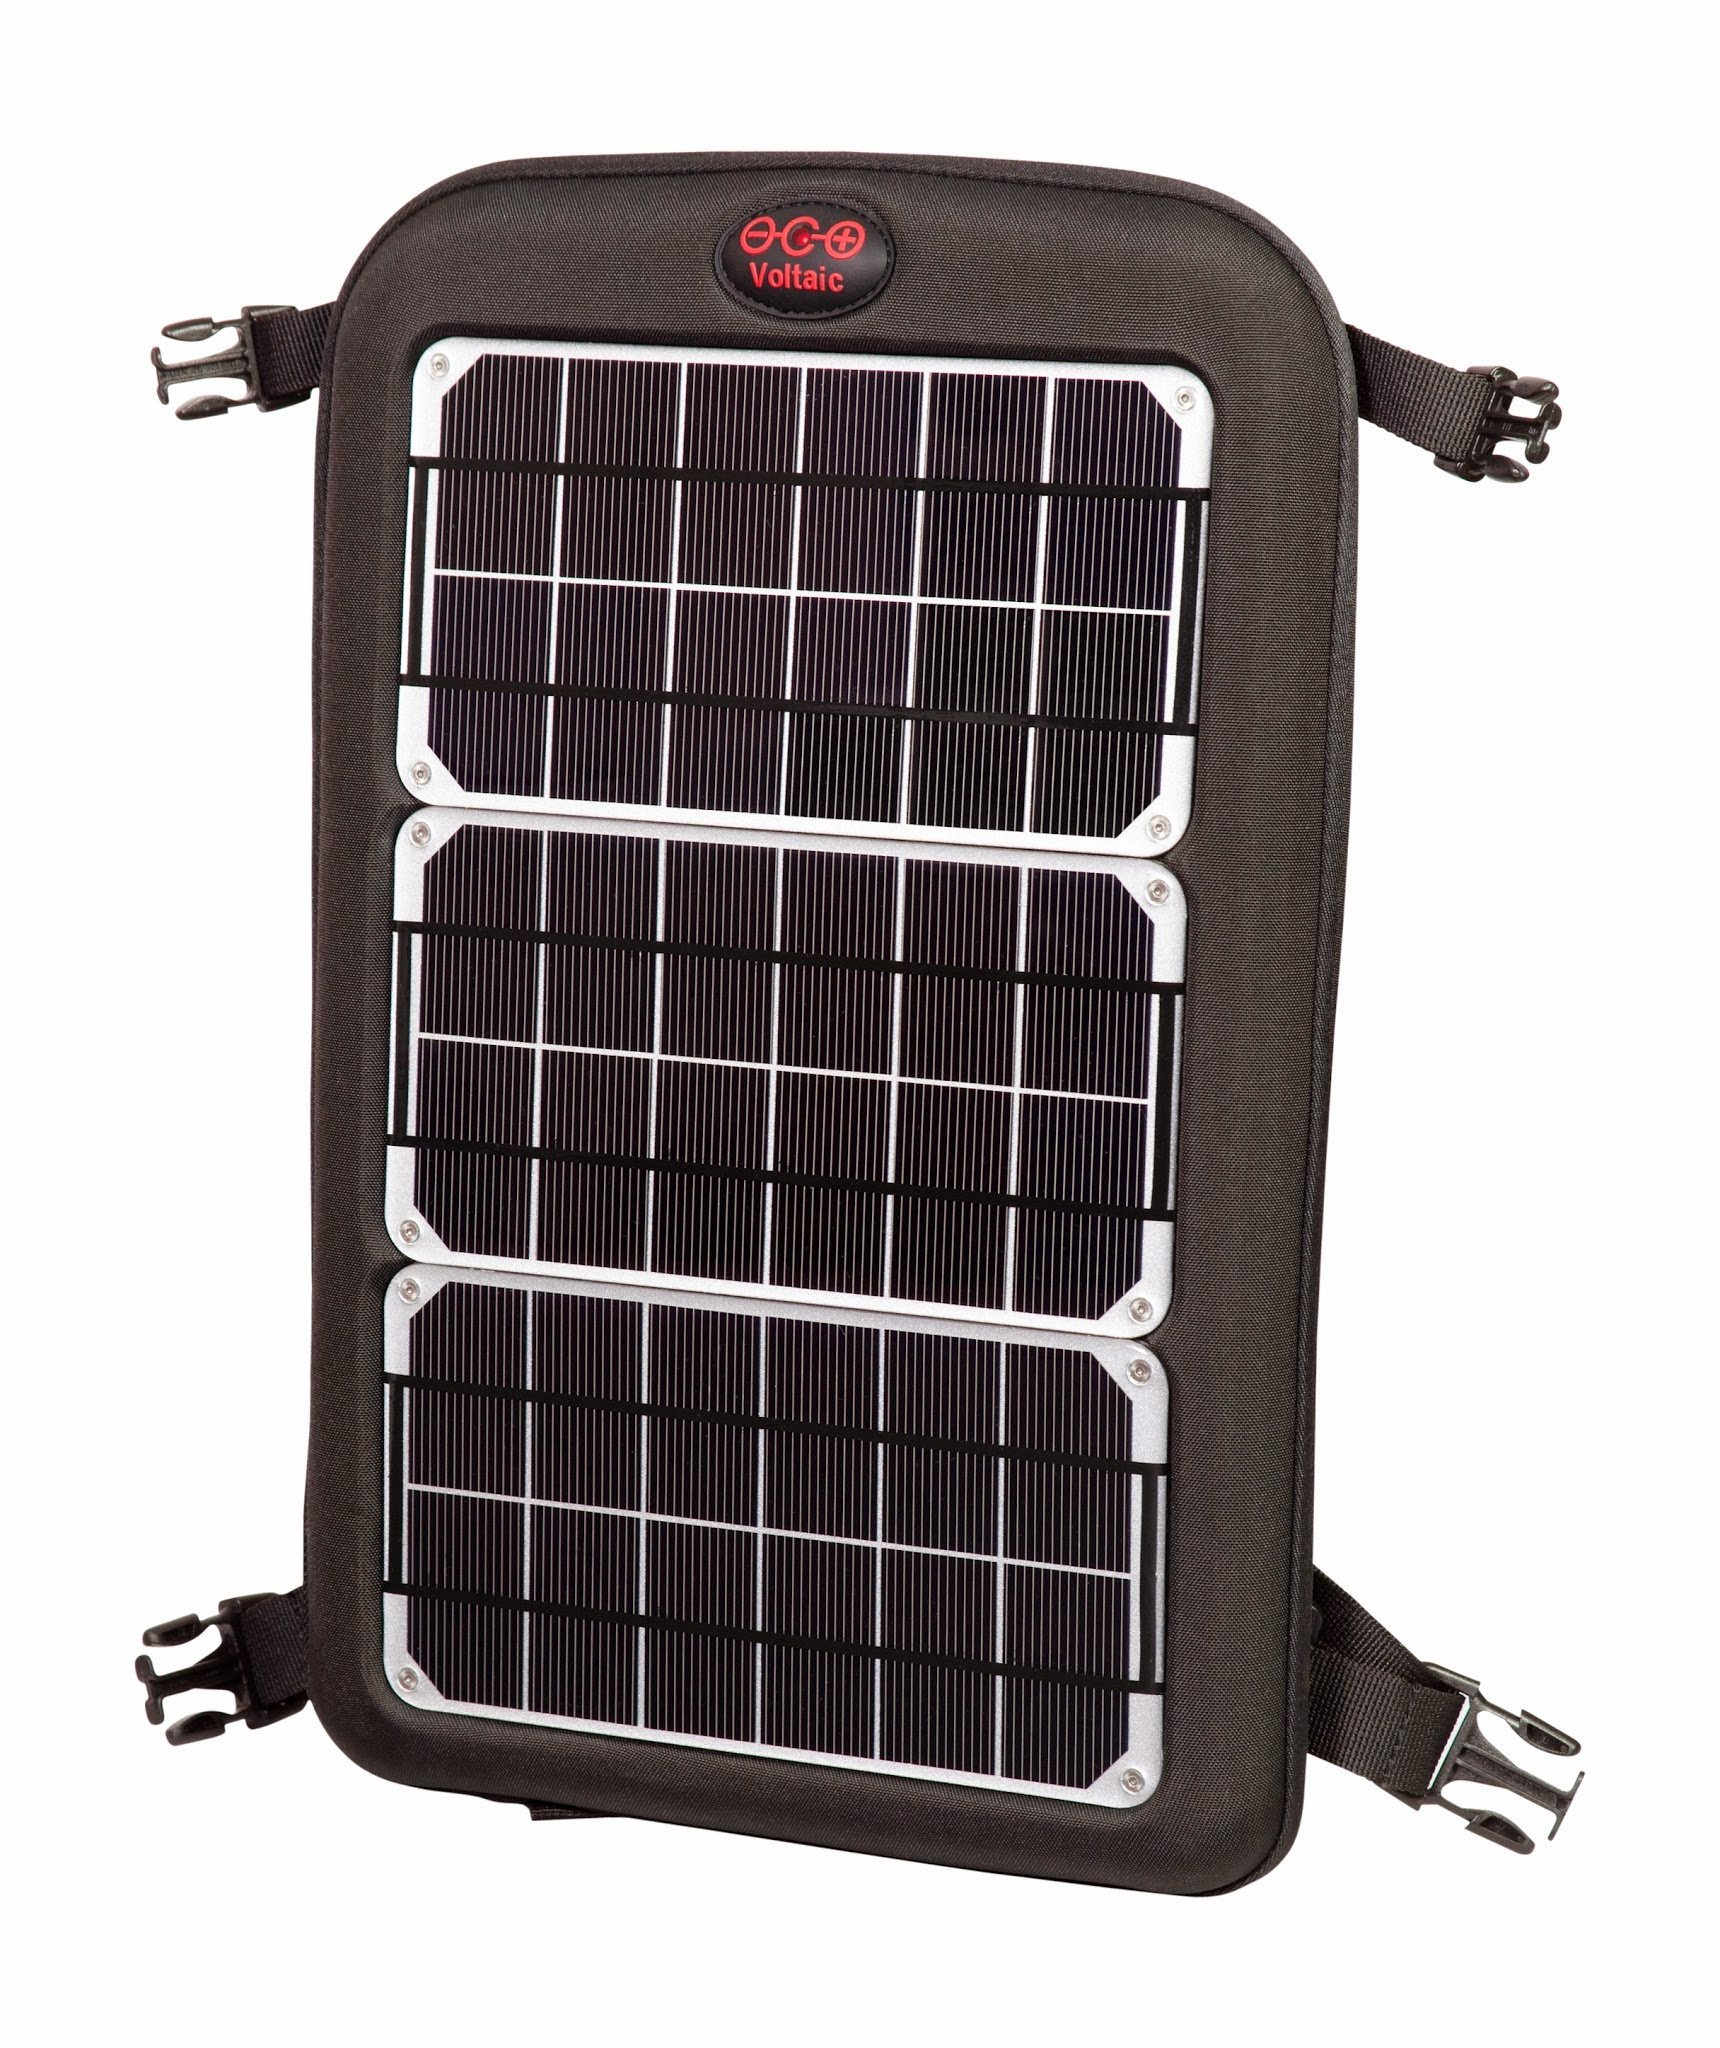 Voltaic Systems - Fuse 10 Watt USB Solar Laptop Charger with Backup Battery Pack - Silver | Powers Laptops, Phones, & More | Solar Charge your Laptop Anywhere